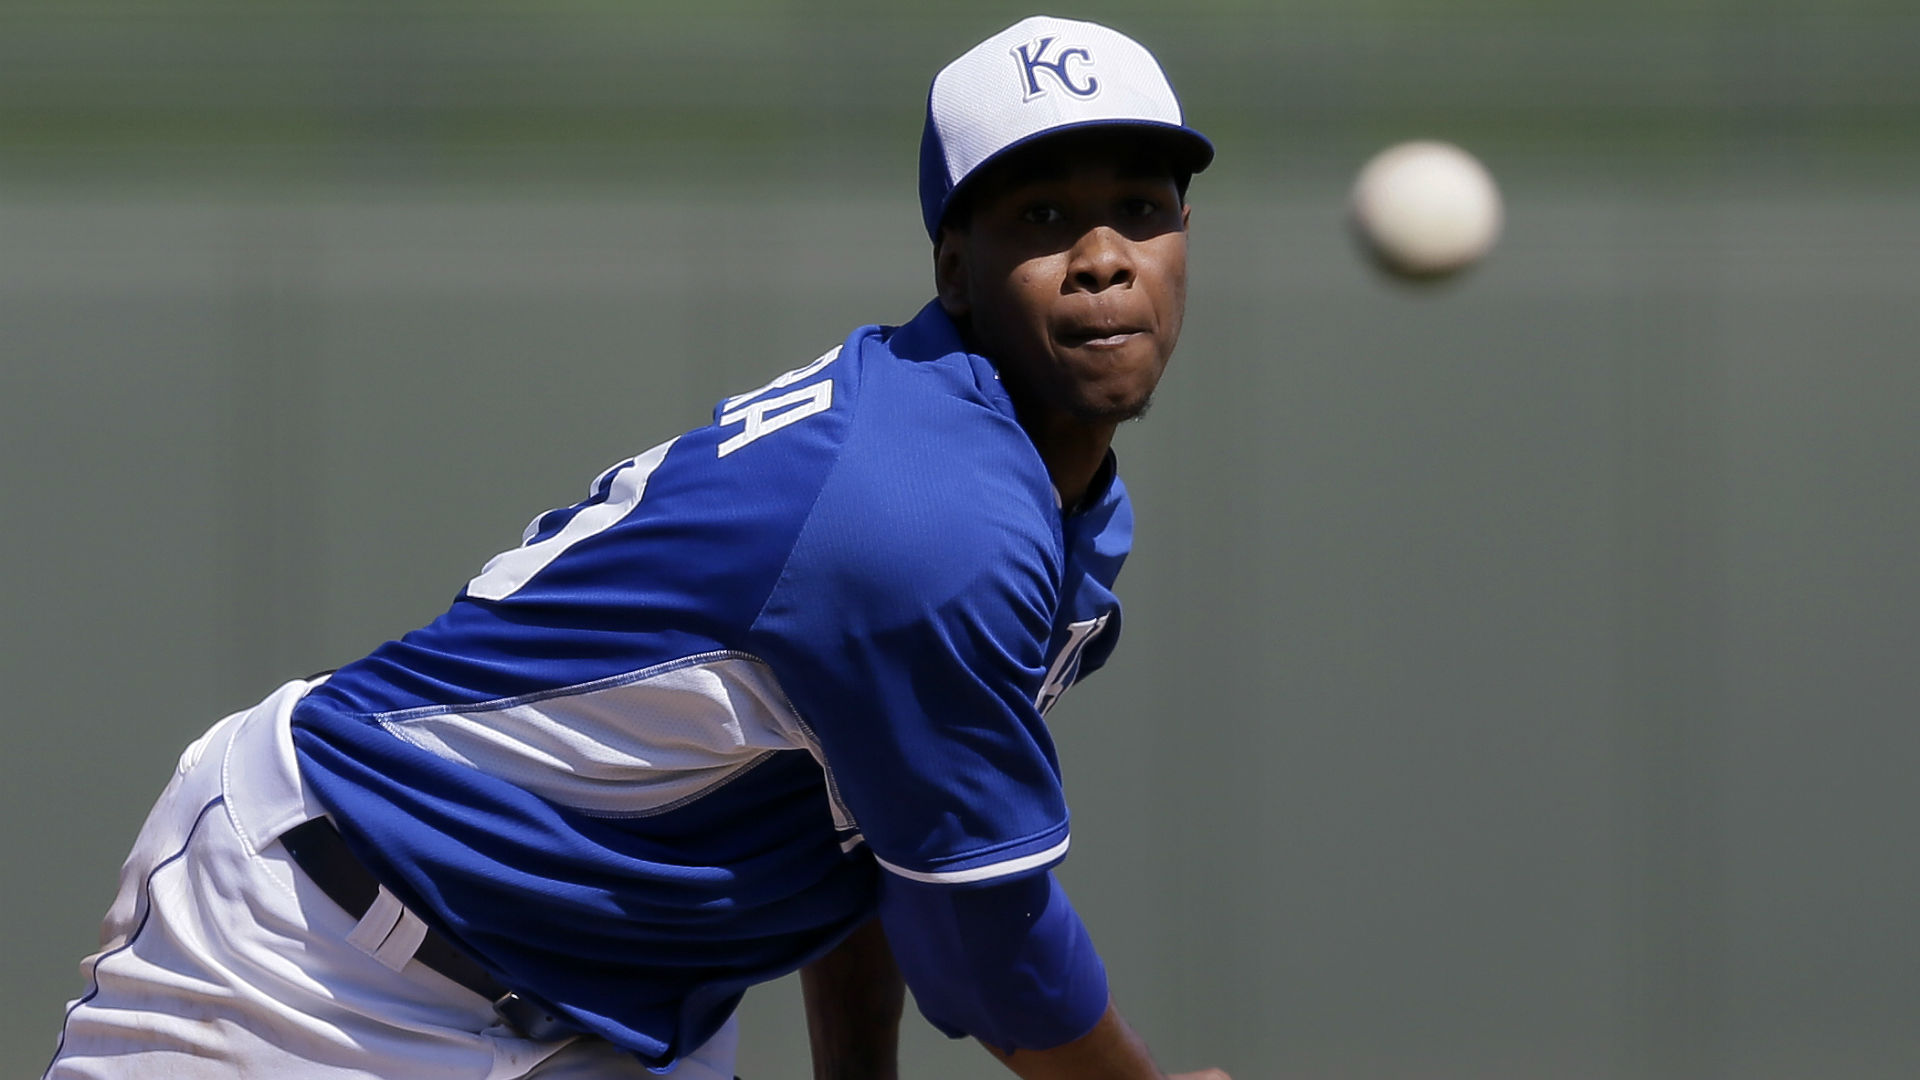 Strikeout machine Yordano Ventura wins spot in K.C. rotation